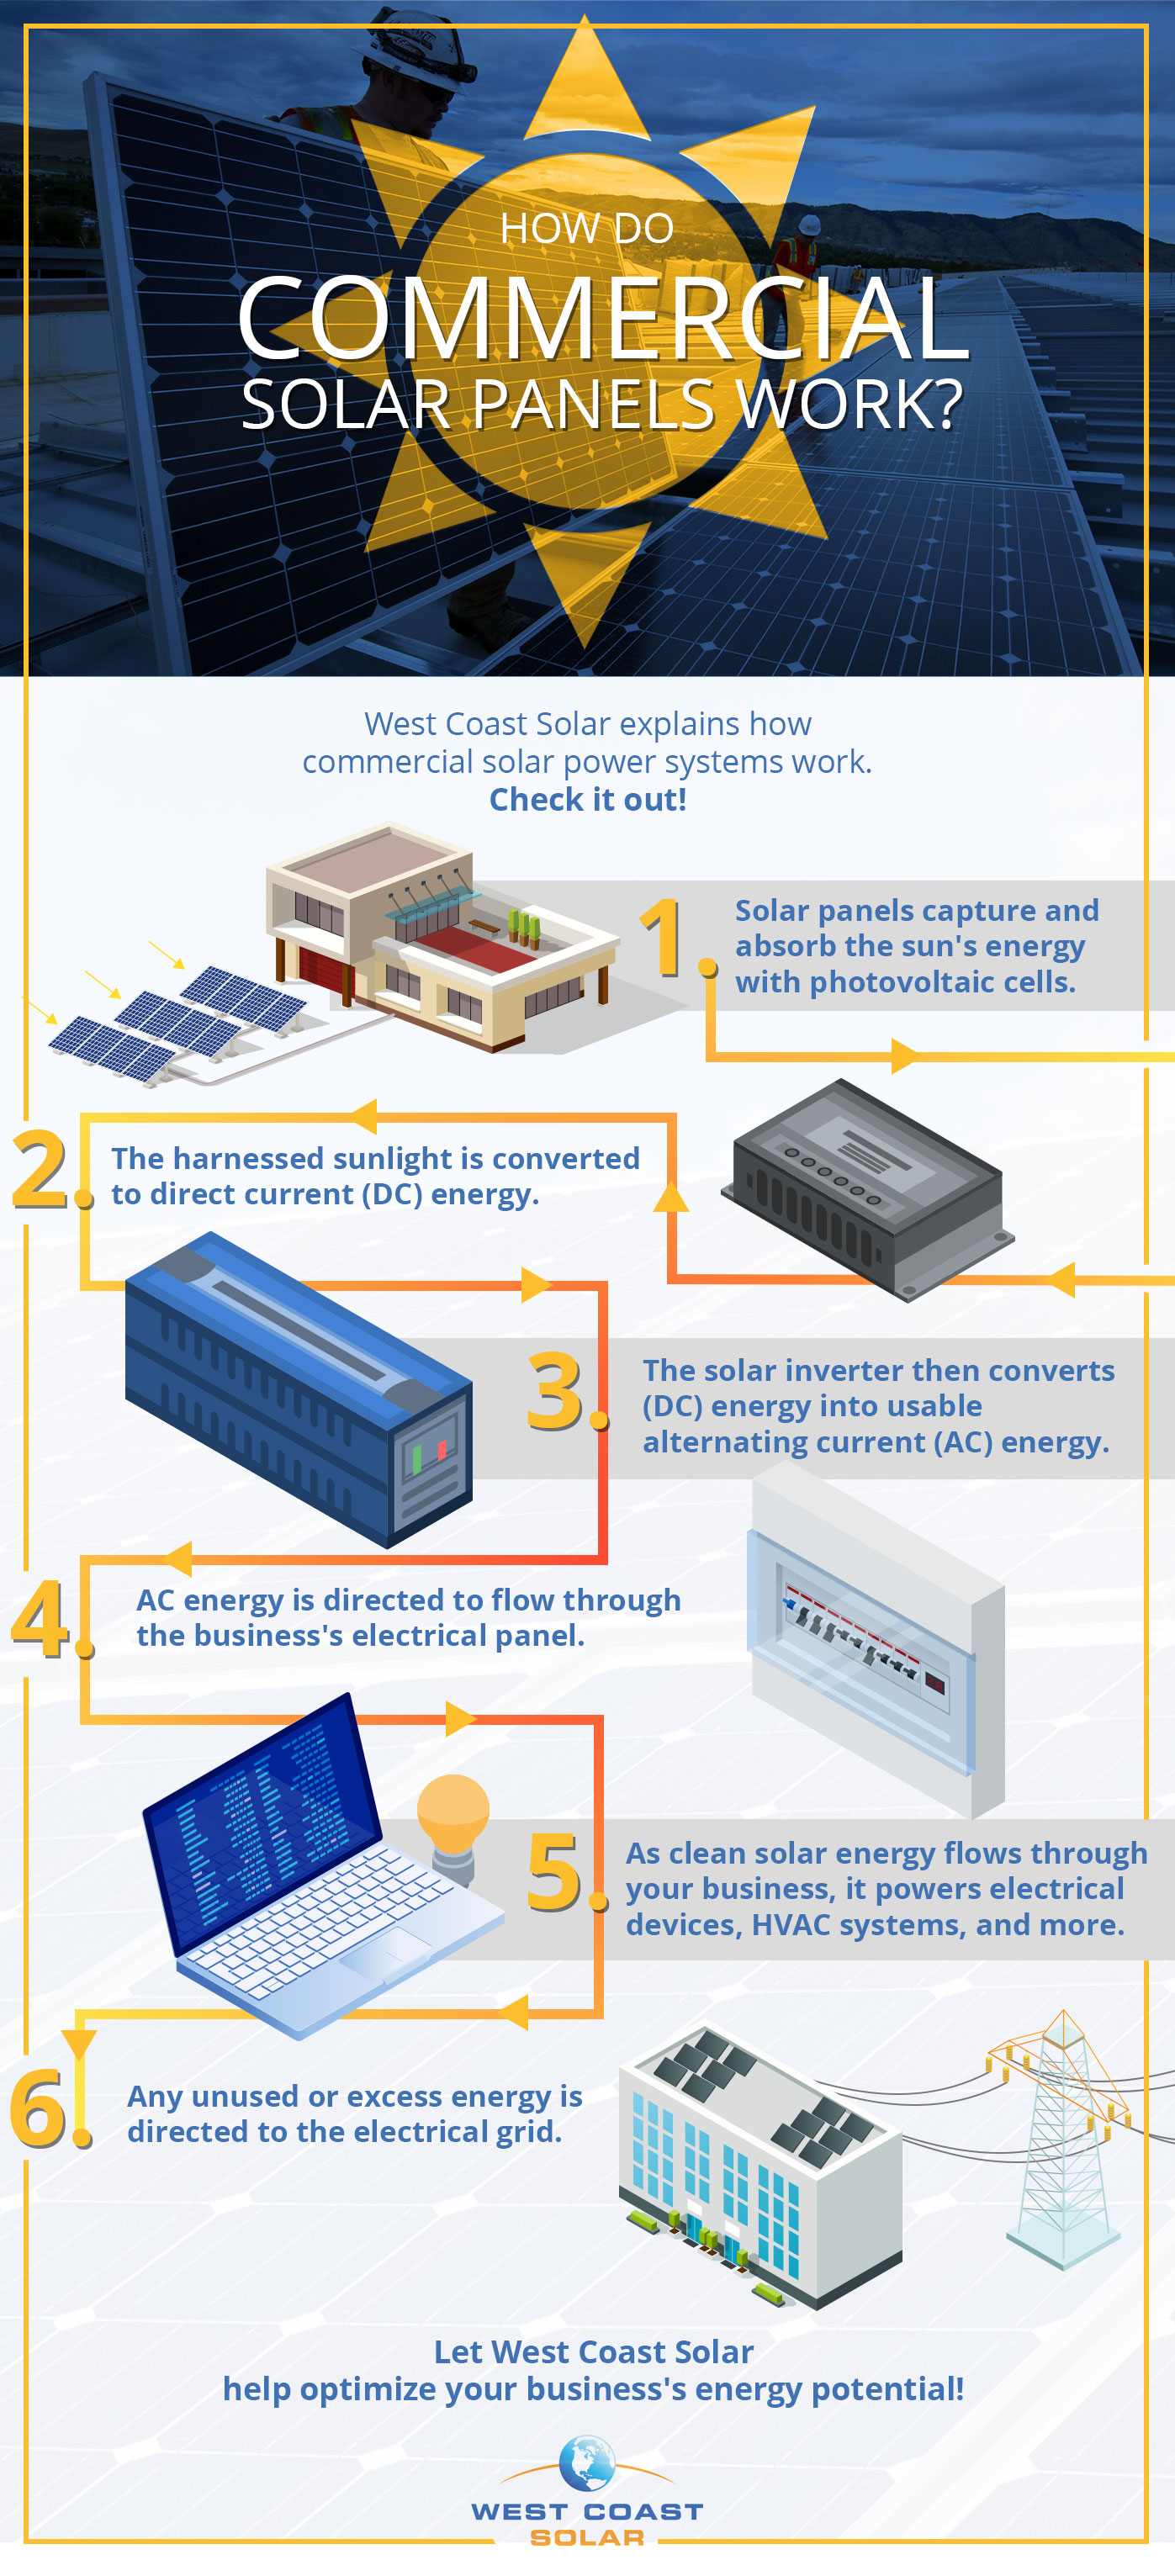 Infographic that gives a step-by-set explanation of how commercial solar panels work